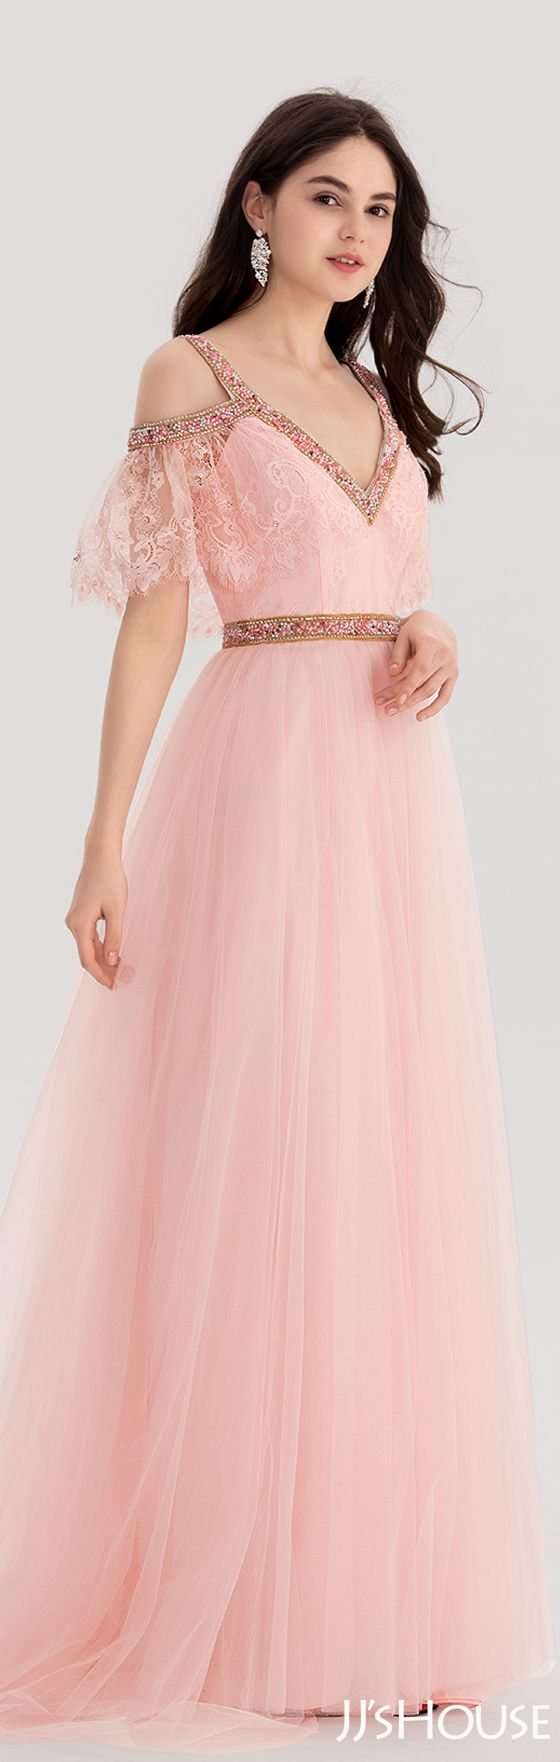 Alineprincess vneck sweep train lace prom dresses with beading